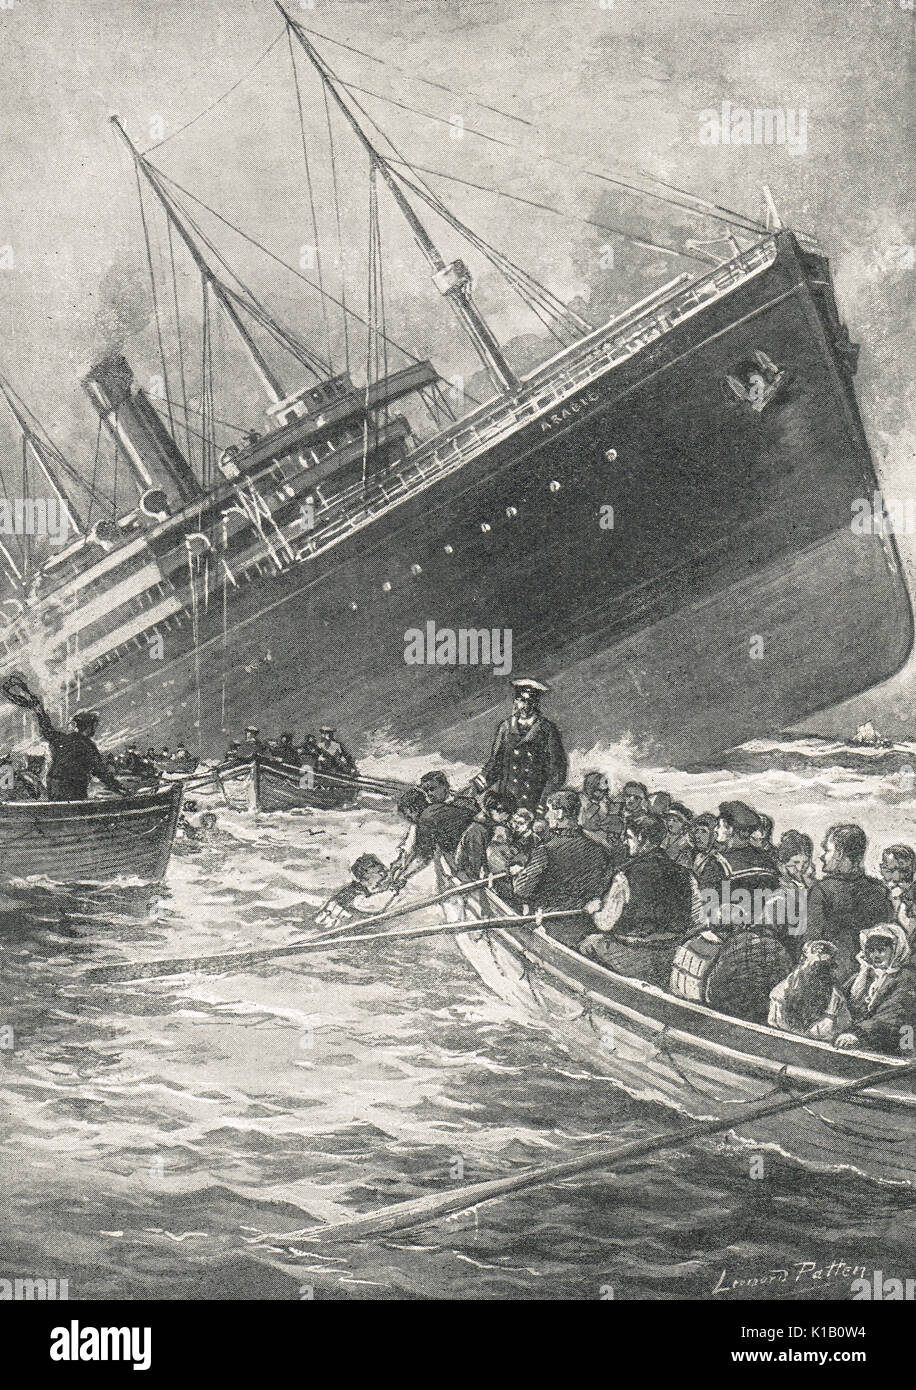 White Star Ocean liner SS Arabic, sunk by u boat, 19 August 1915,  WW1 - Stock Image